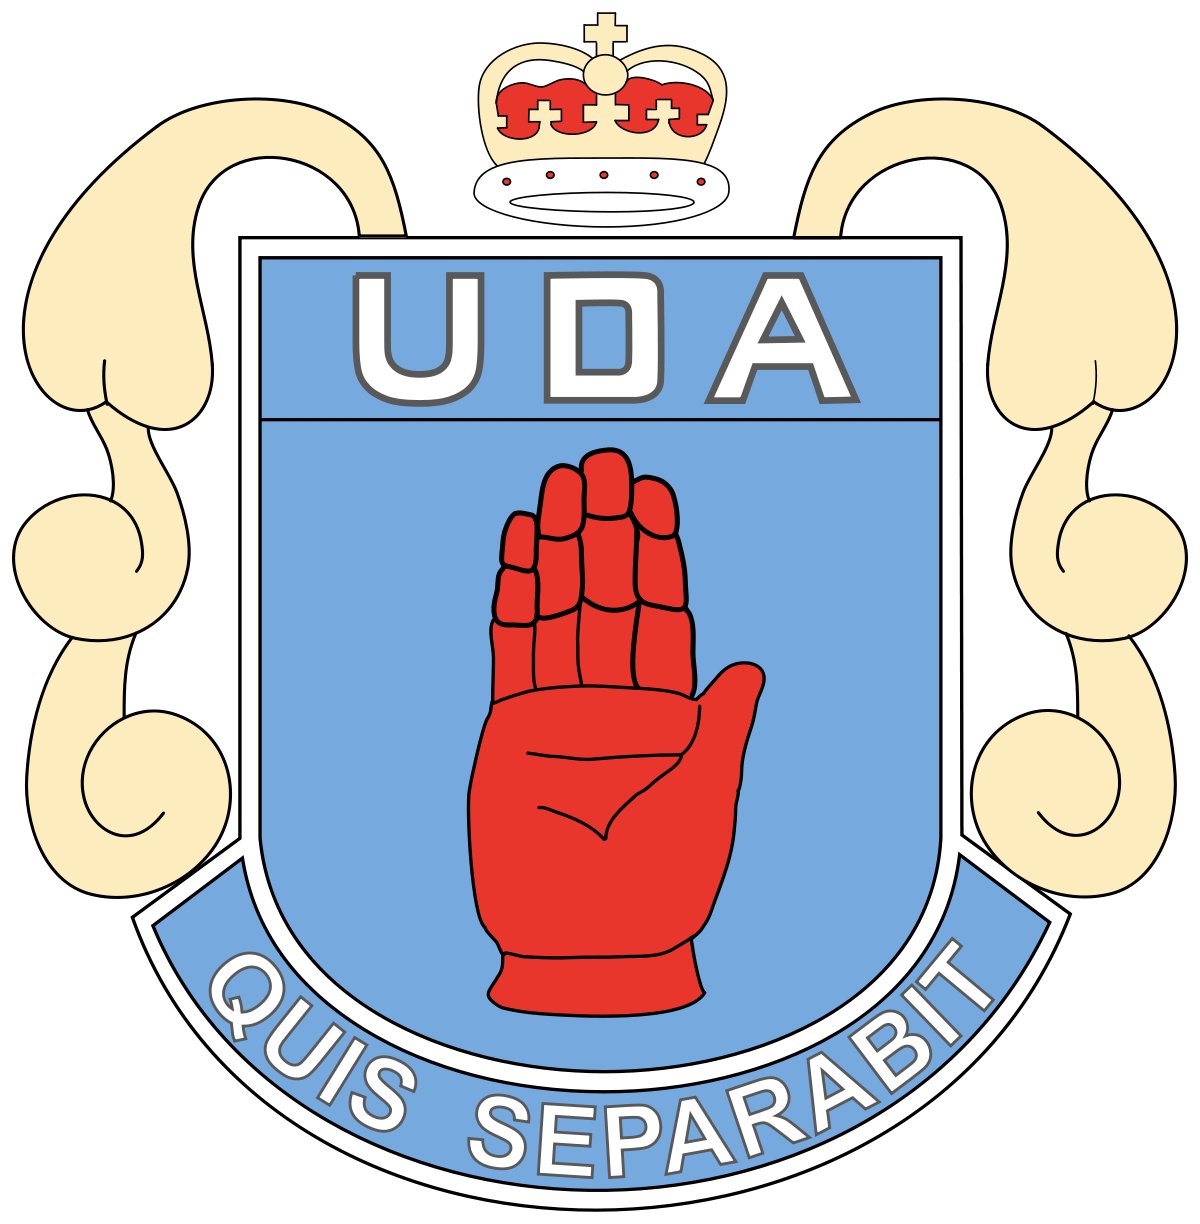 Clipart word 2013 strikingly. Ulster defence association wikipedia